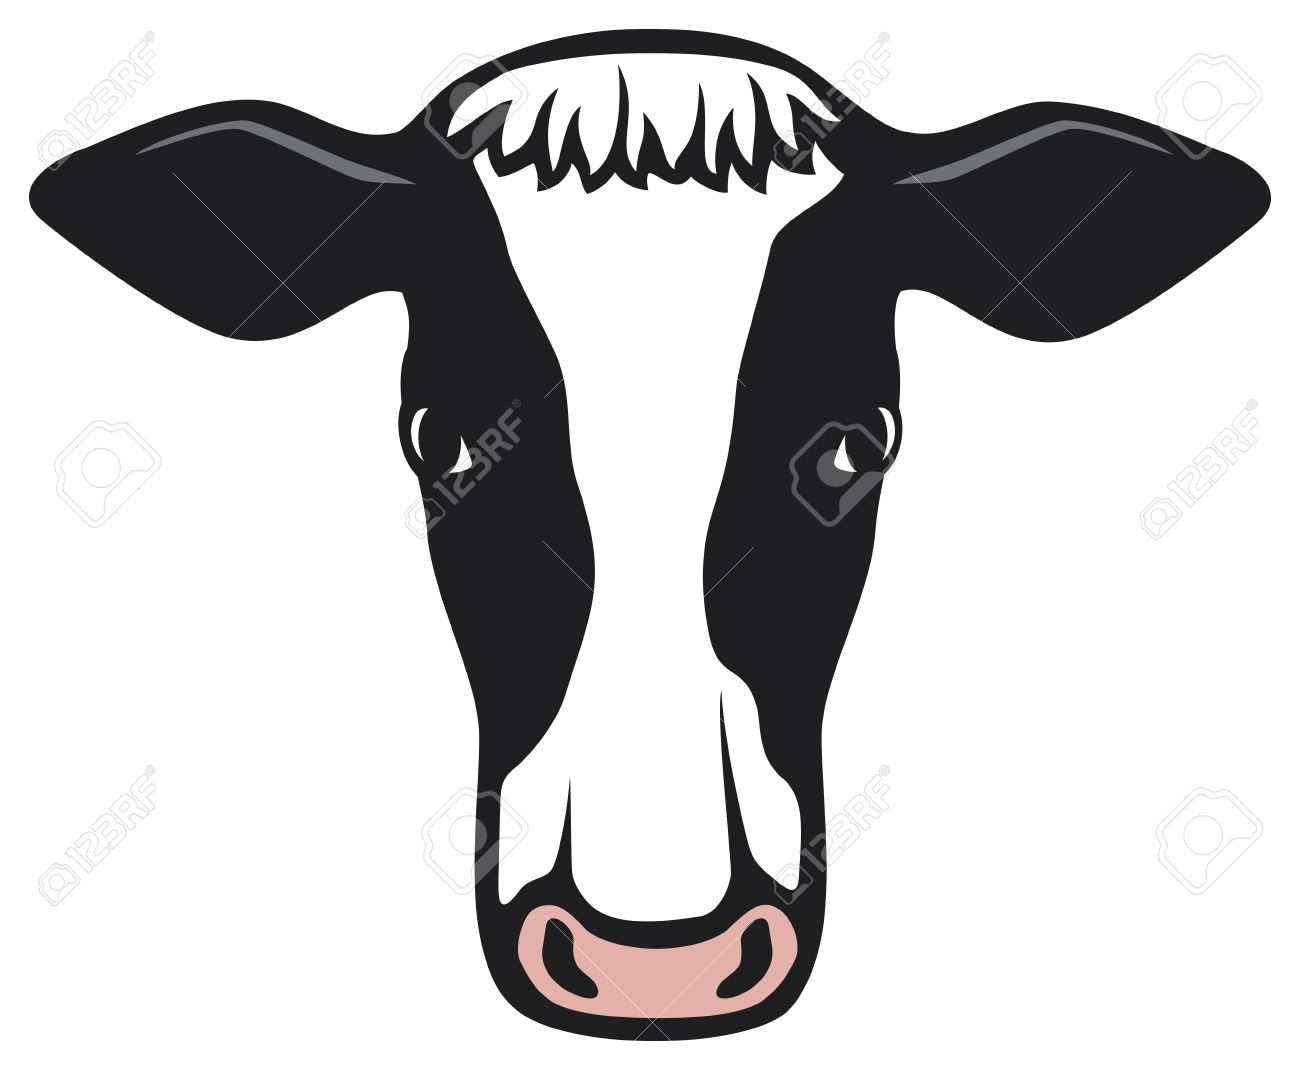 cow head royalty free cliparts vectors and stock illustration rh 123rf com cartoon cow head clip art dairy cow head clip art